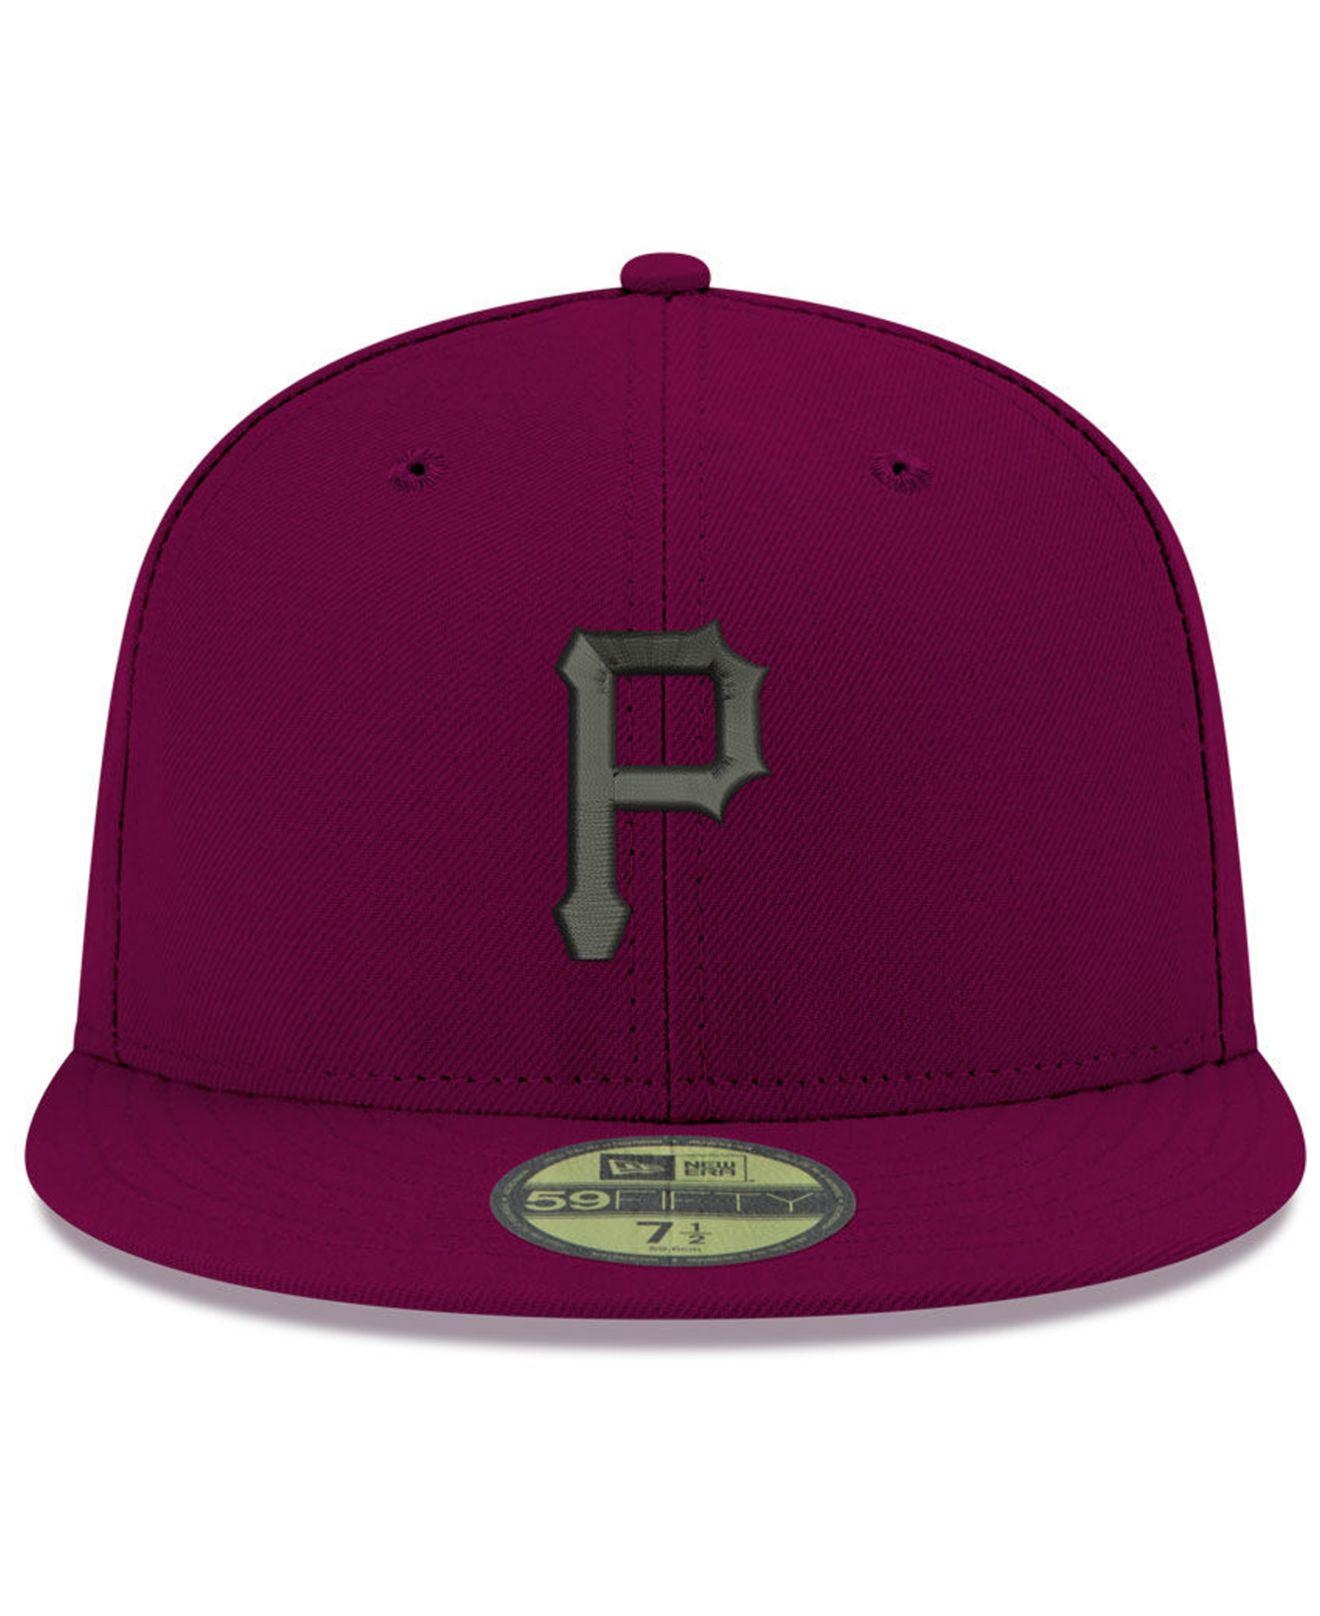 timeless design c128d a027c Lyst - KTZ Pittsburgh Pirates Reverse C-dub 59fifty Fitted Cap in Purple  for Men